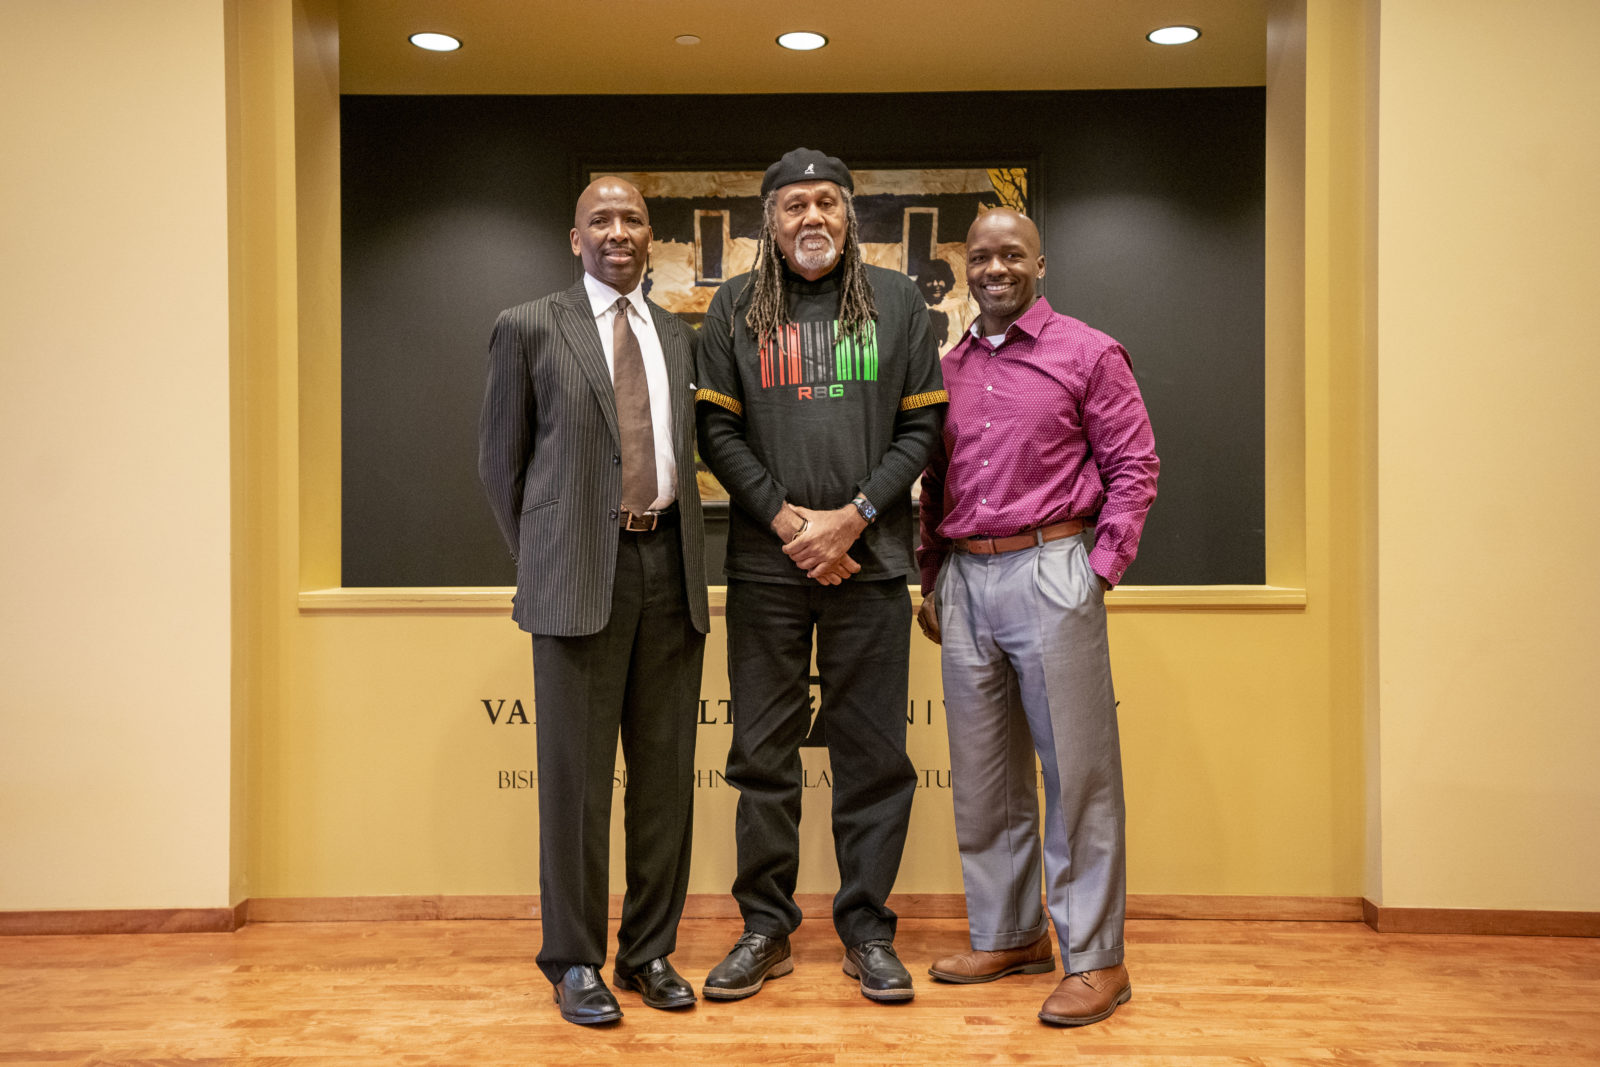 (L to r) Frank Dobson, associate dean of the Martha Rivers Ingram Commons; Raymond Winbush, first director of the Black Cultural Center; and Rosevelt Noble, assistant dean of residential colleges and director of the Black Cultural Center. (John Russell/Vanderbilt)